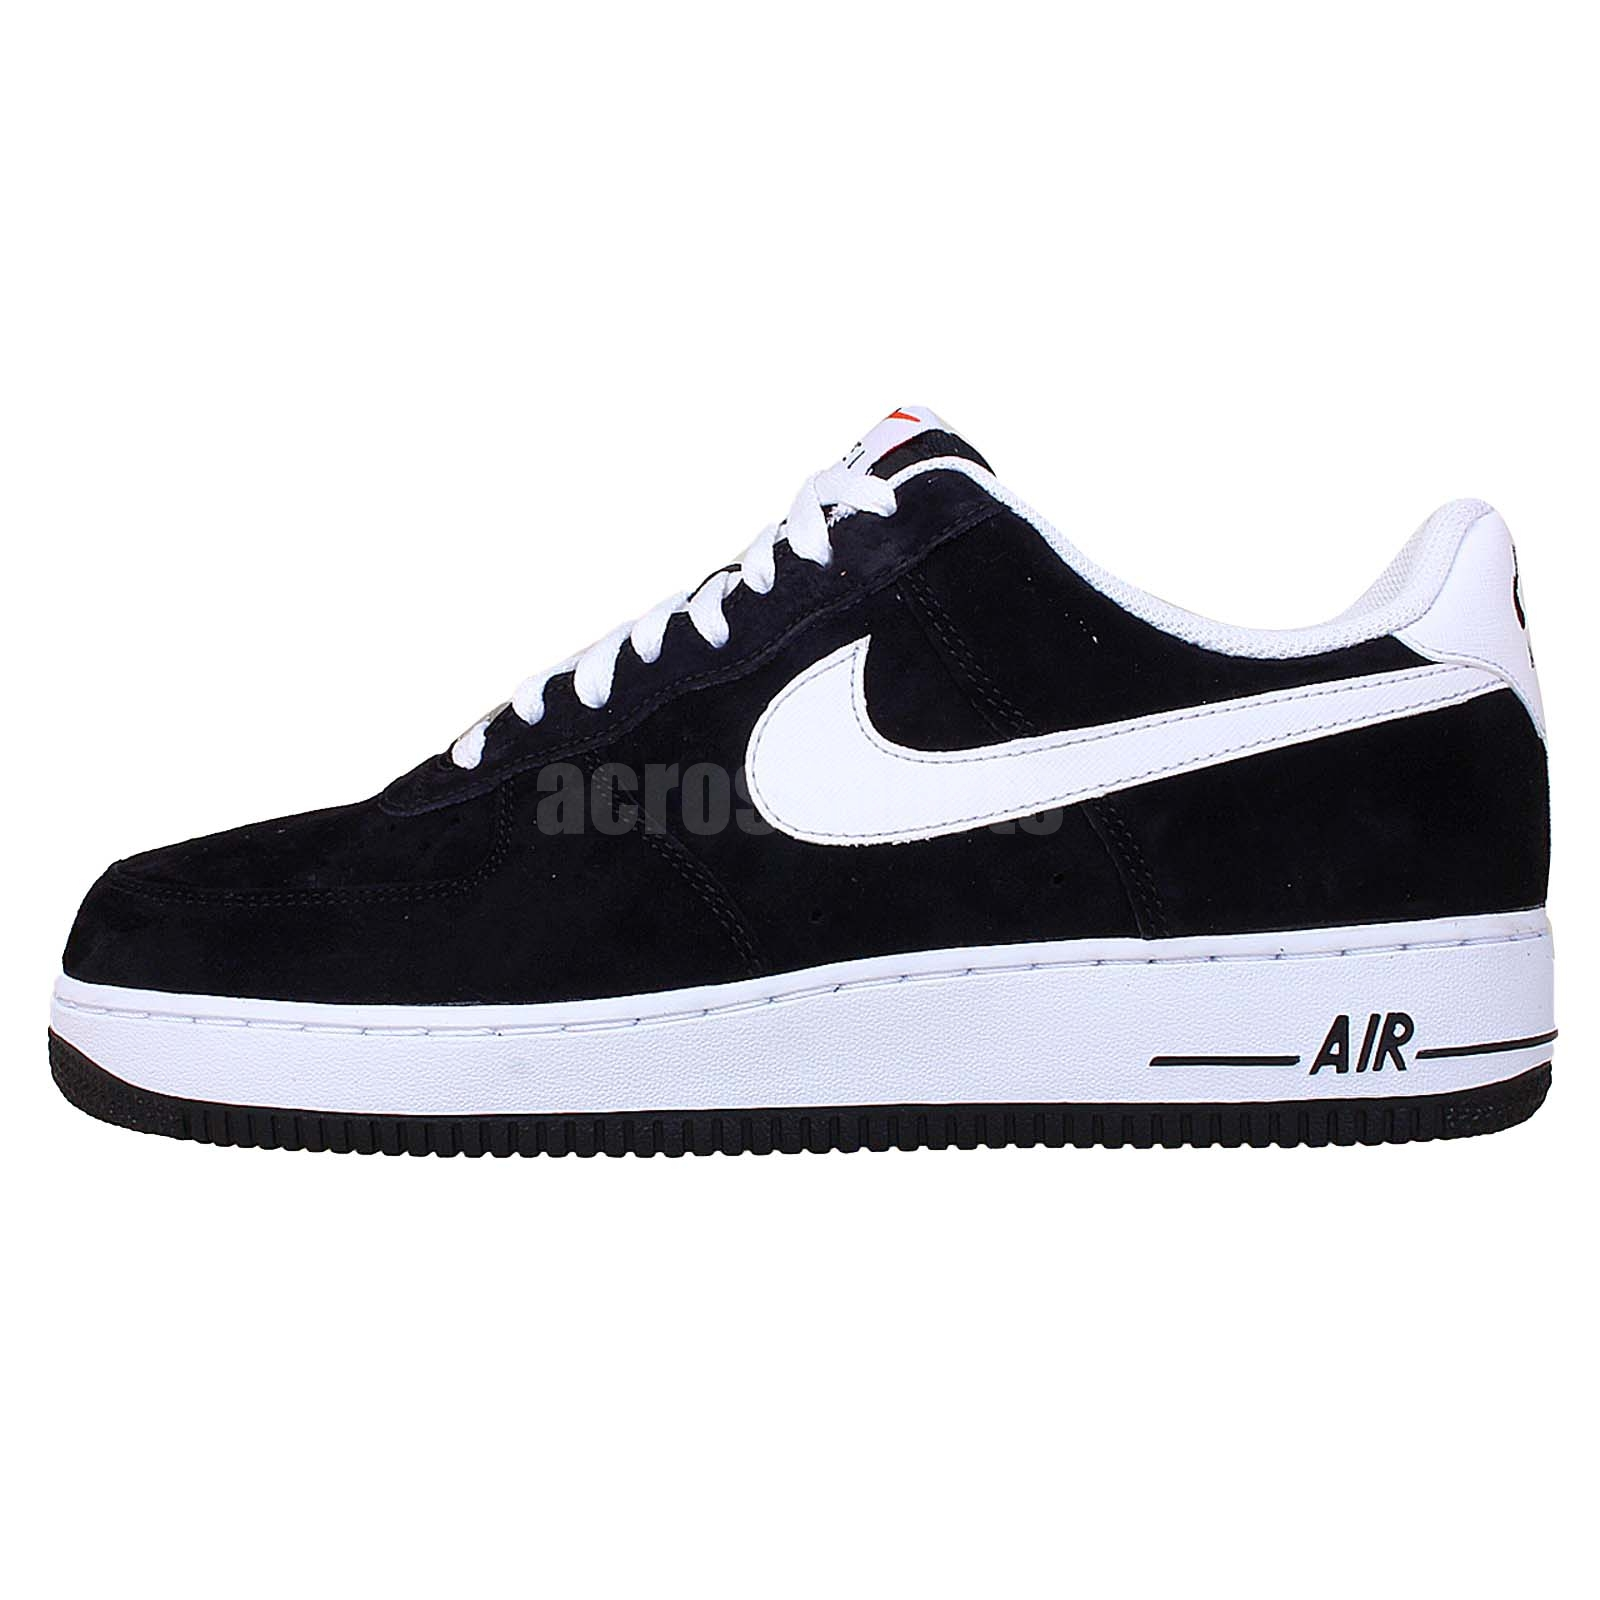 nike air force 1 black suede white 2014 mens casual fashion shoes af1 sneakers ebay. Black Bedroom Furniture Sets. Home Design Ideas